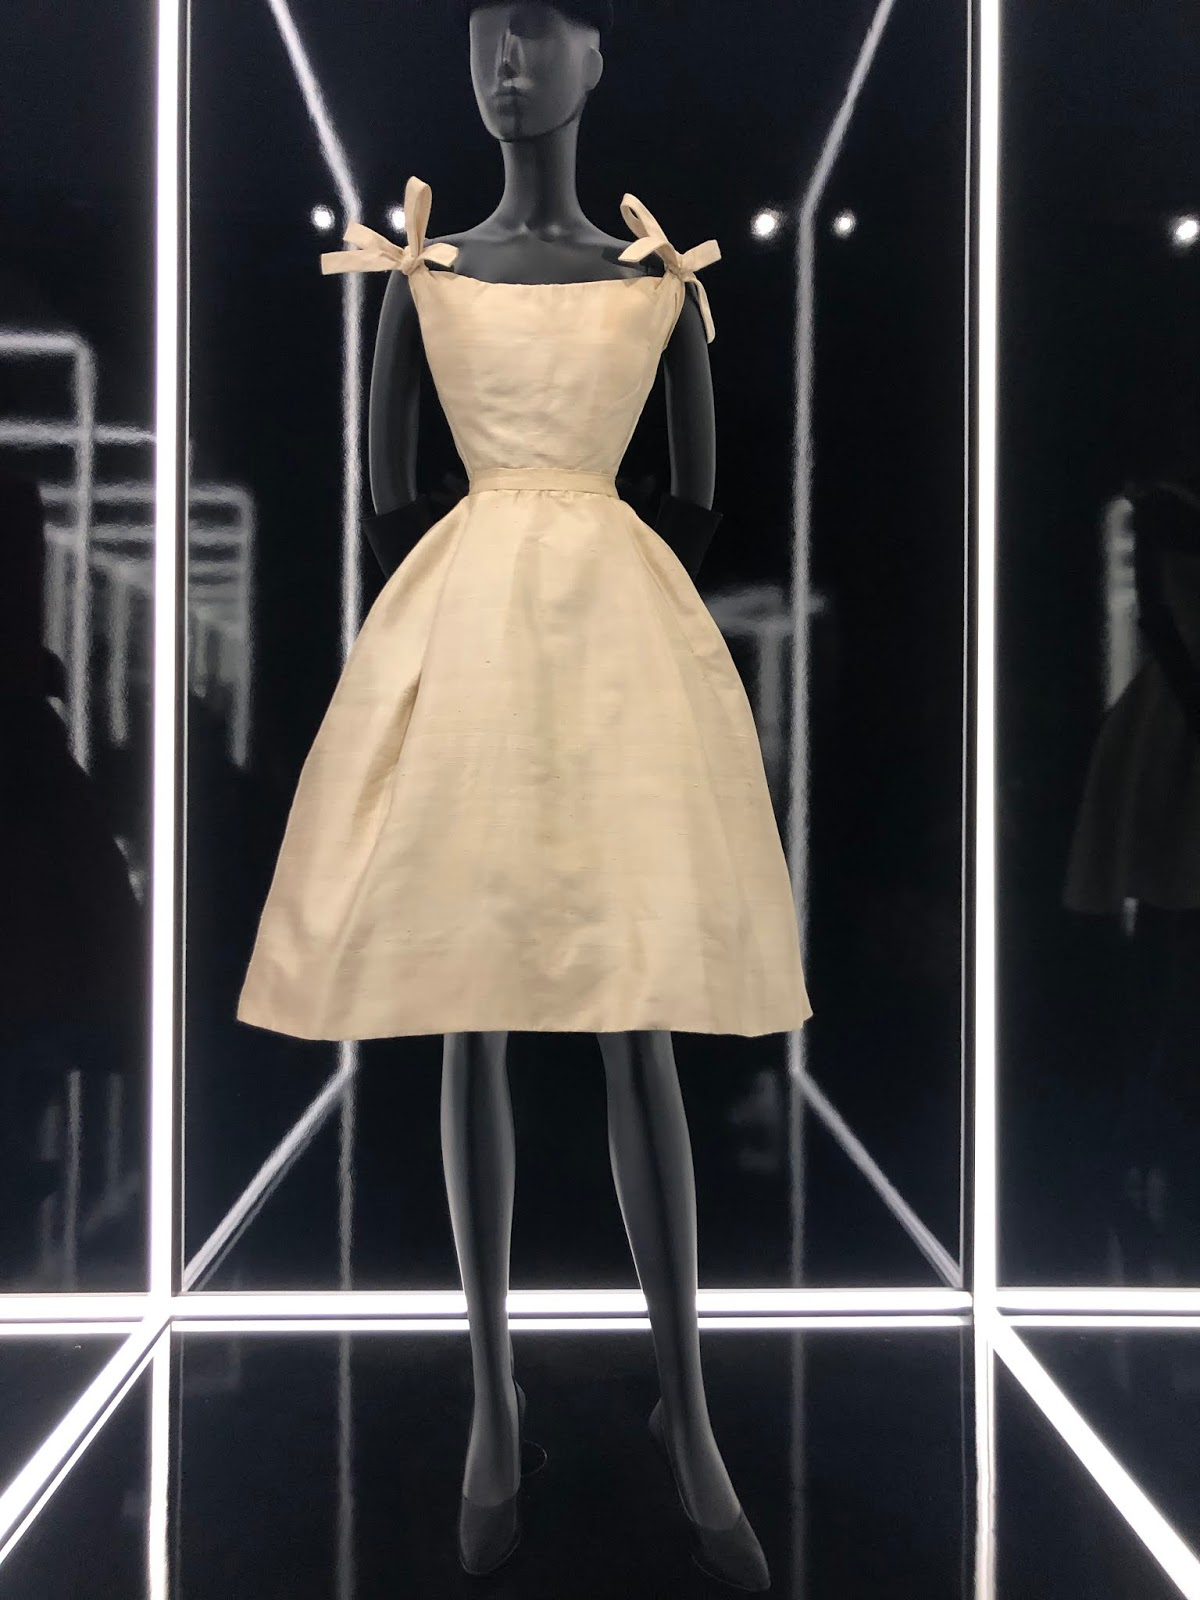 christian dior exhibition v and a white bow dress